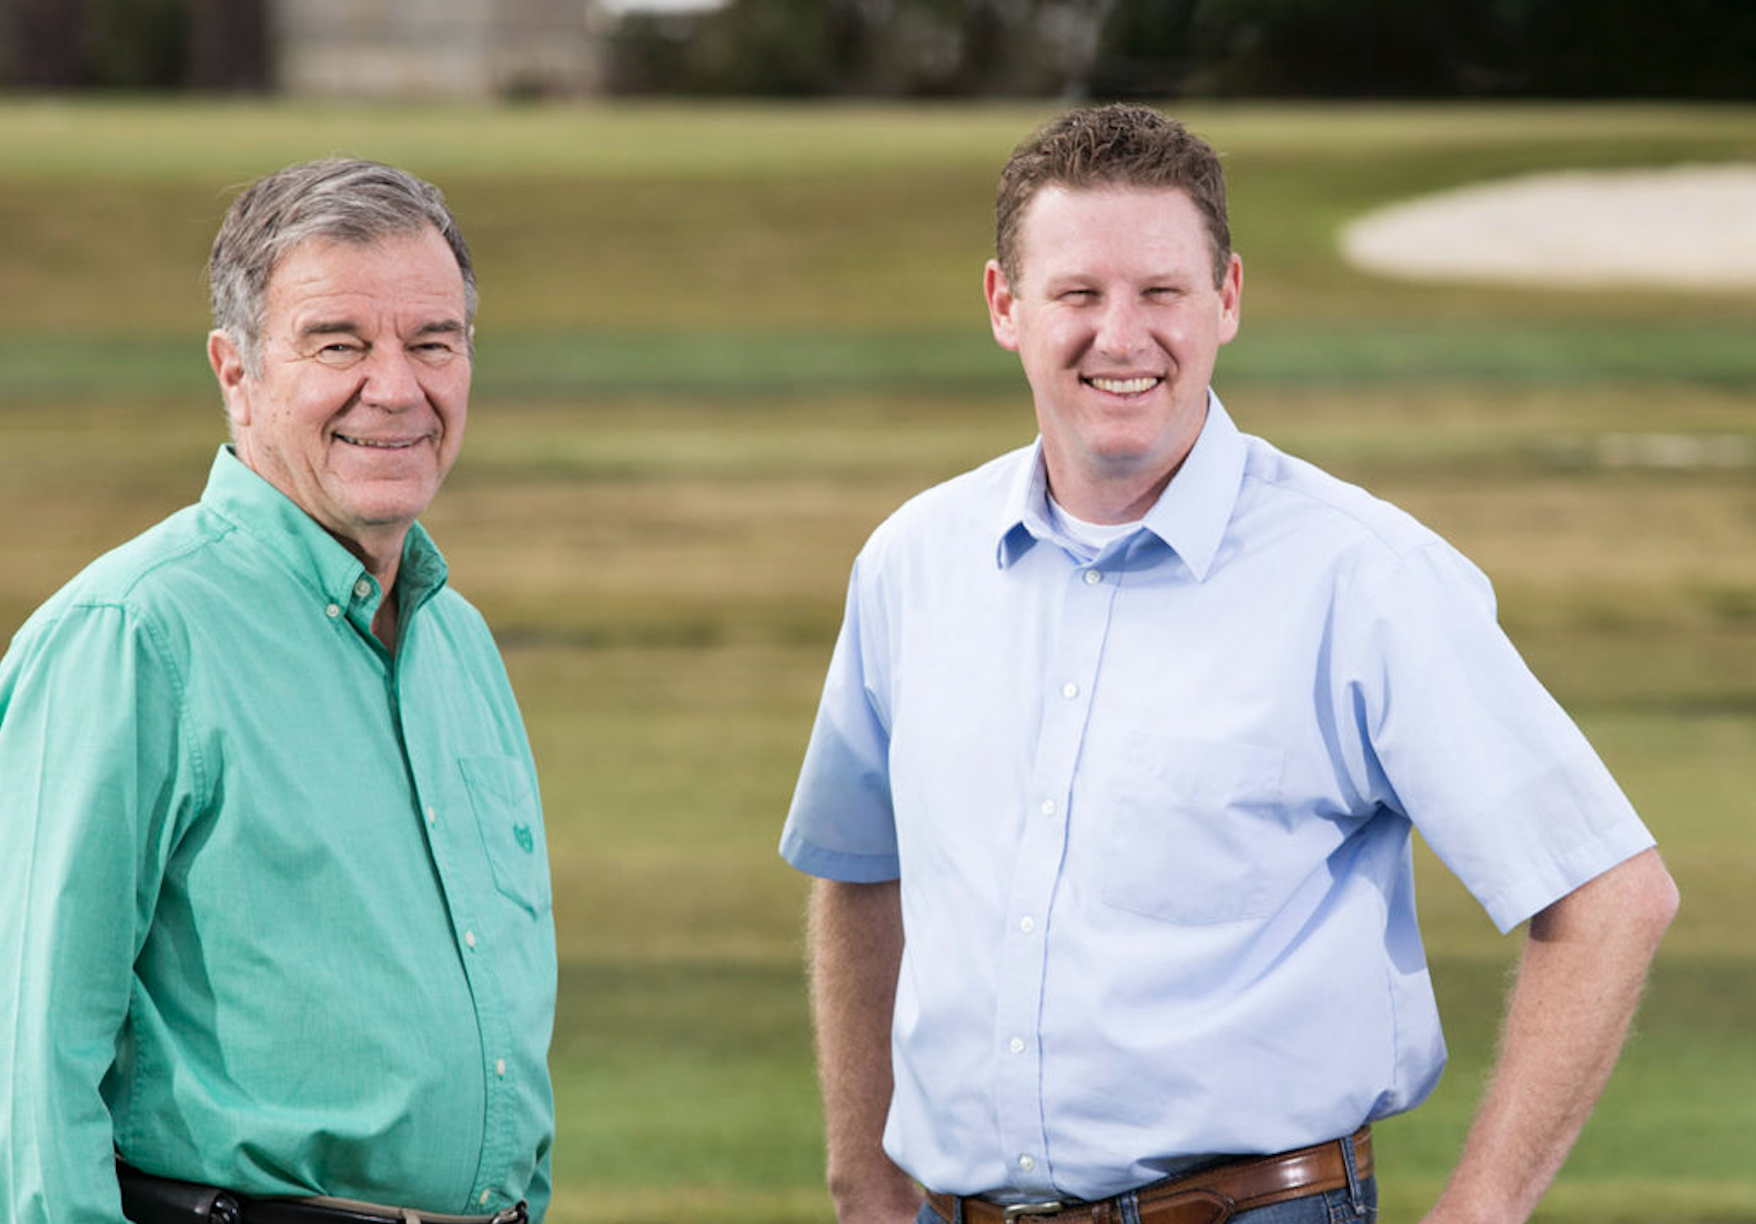 Wayne Hanna, left, and Brian Schwartz in a turfgrass research field at UGA-Tifton. (UGA photo taken by Dorothy Kozlowski/UGA in 2017)